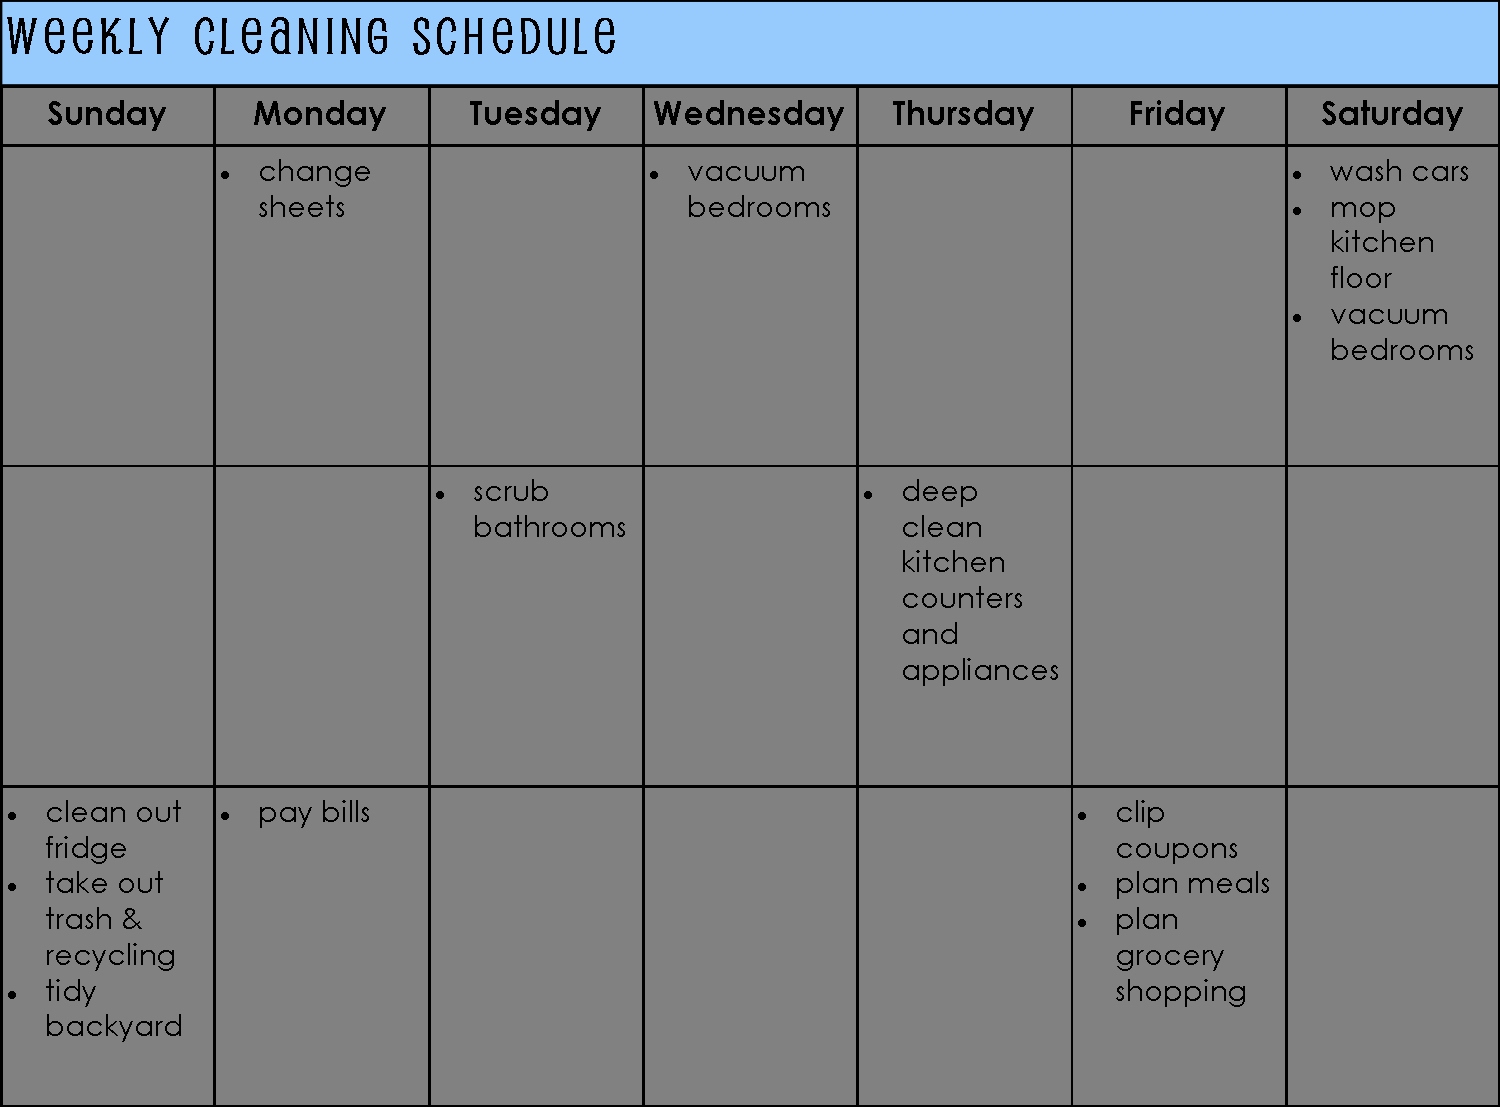 Weekly House Cleaning Schedule Template Luxury Establishing A Cleaning Schedule for Your Home Life as Mom